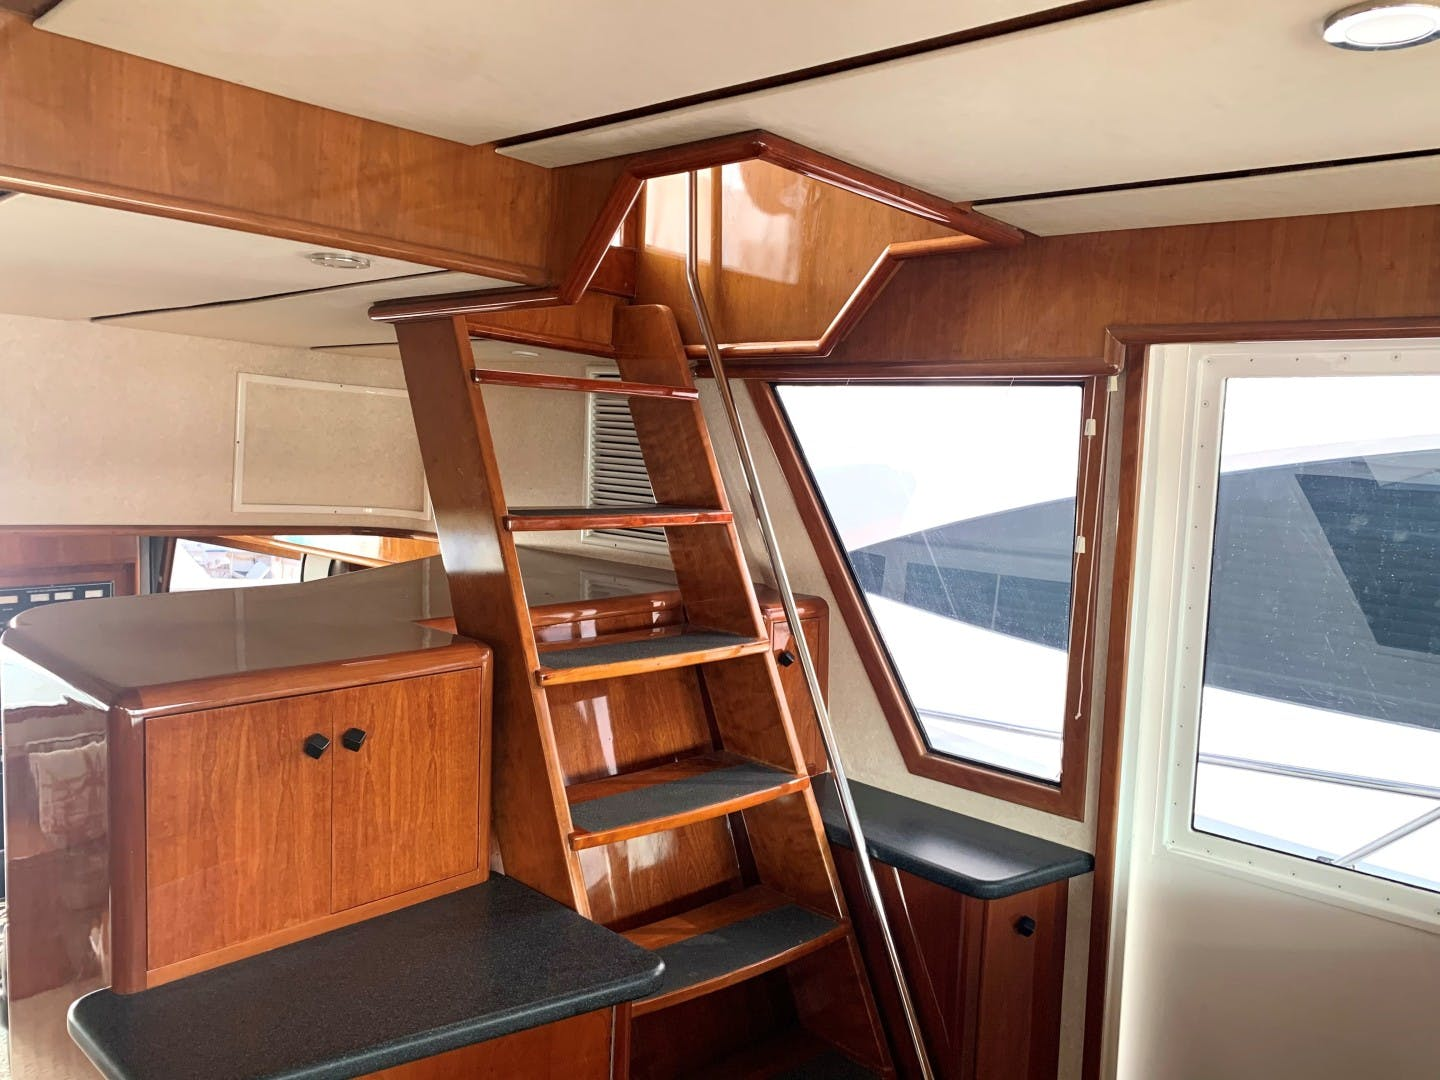 1996 Huckins 64' Motoryacht CORTINA | Picture 4 of 29